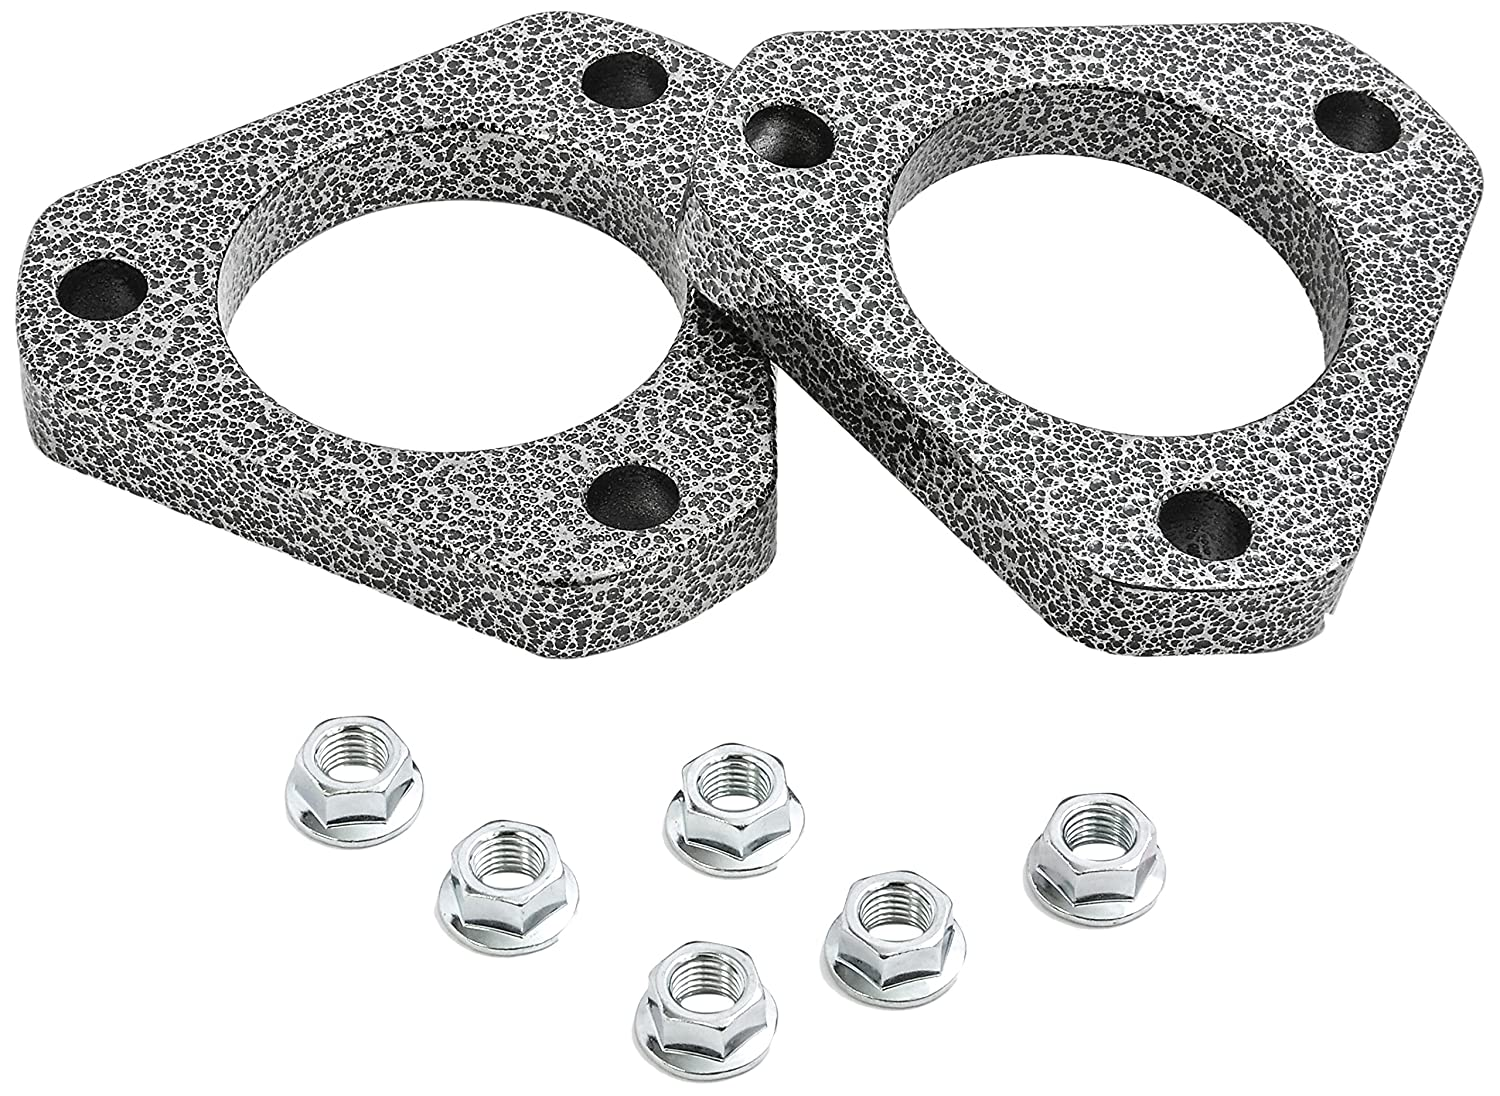 Rugged Off Road 9-101 1.25 Front Leveling Kit